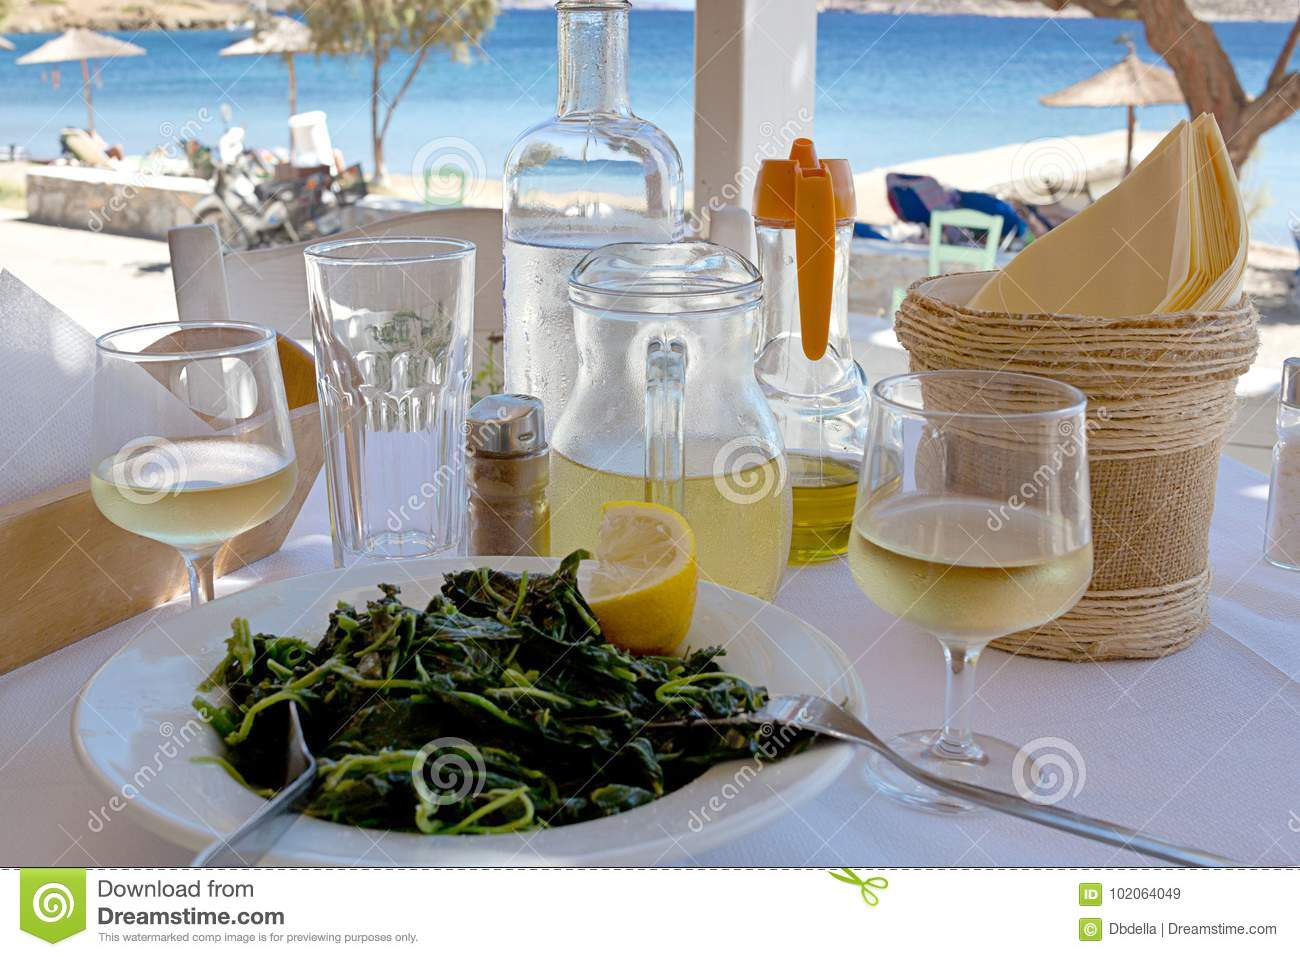 Greek khorta, white wine on restaurant table near the sea. Dodecanese Islands